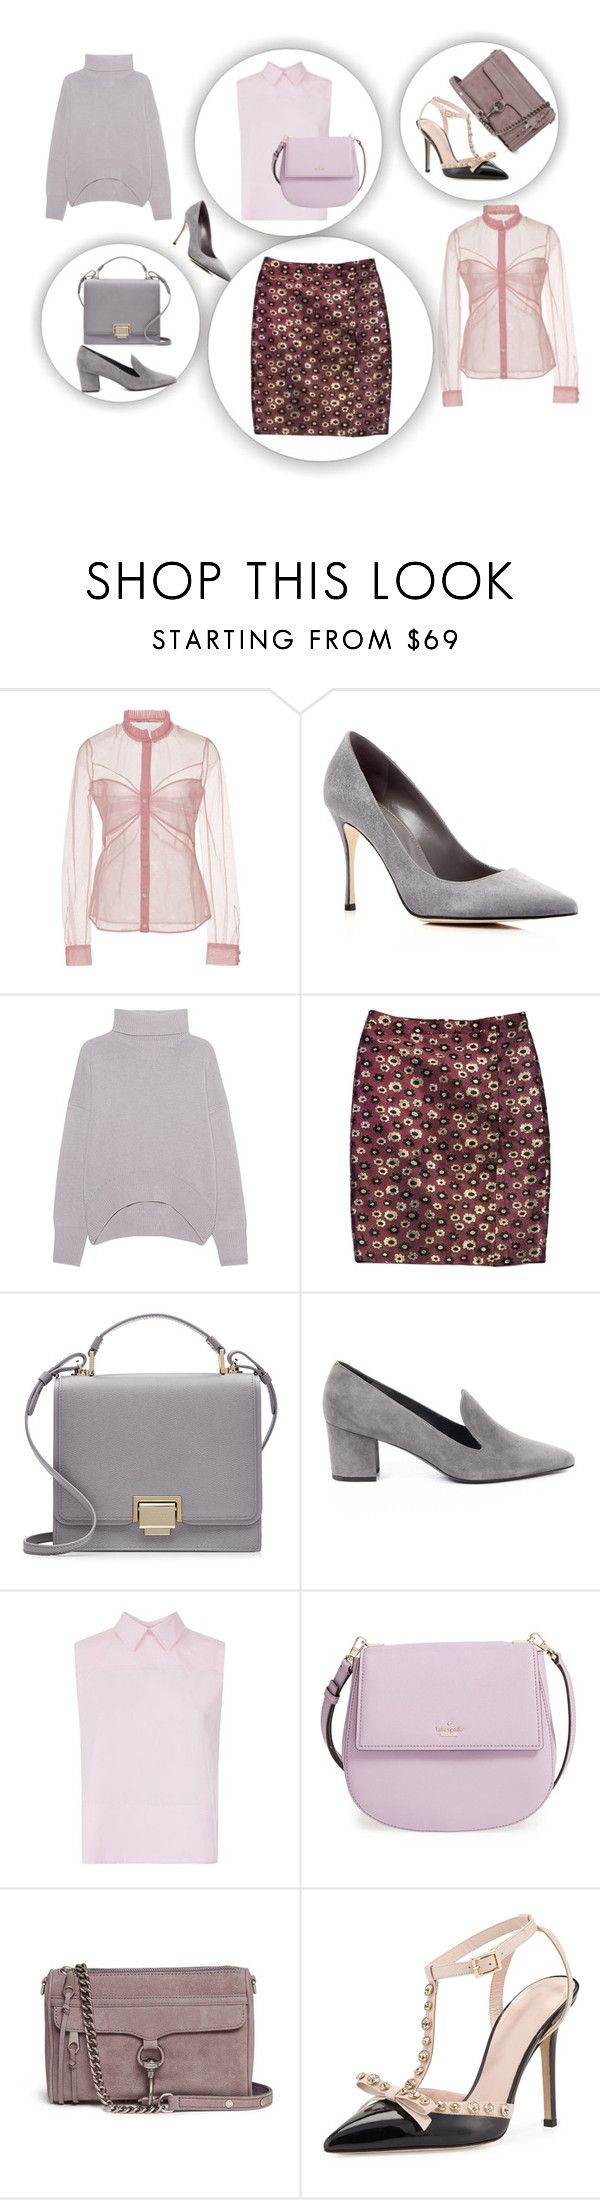 """Wardrobe capsule: Mauve, ice pink, smoke, lavender"" by bijouxinedit on Polyvore featuring Mary Katrantzou, Sergio Rossi, J.Crew, Smythson, Stuart Weitzman, Victoria, Victoria Beckham, Kate Spade and Rebecca Minkoff"